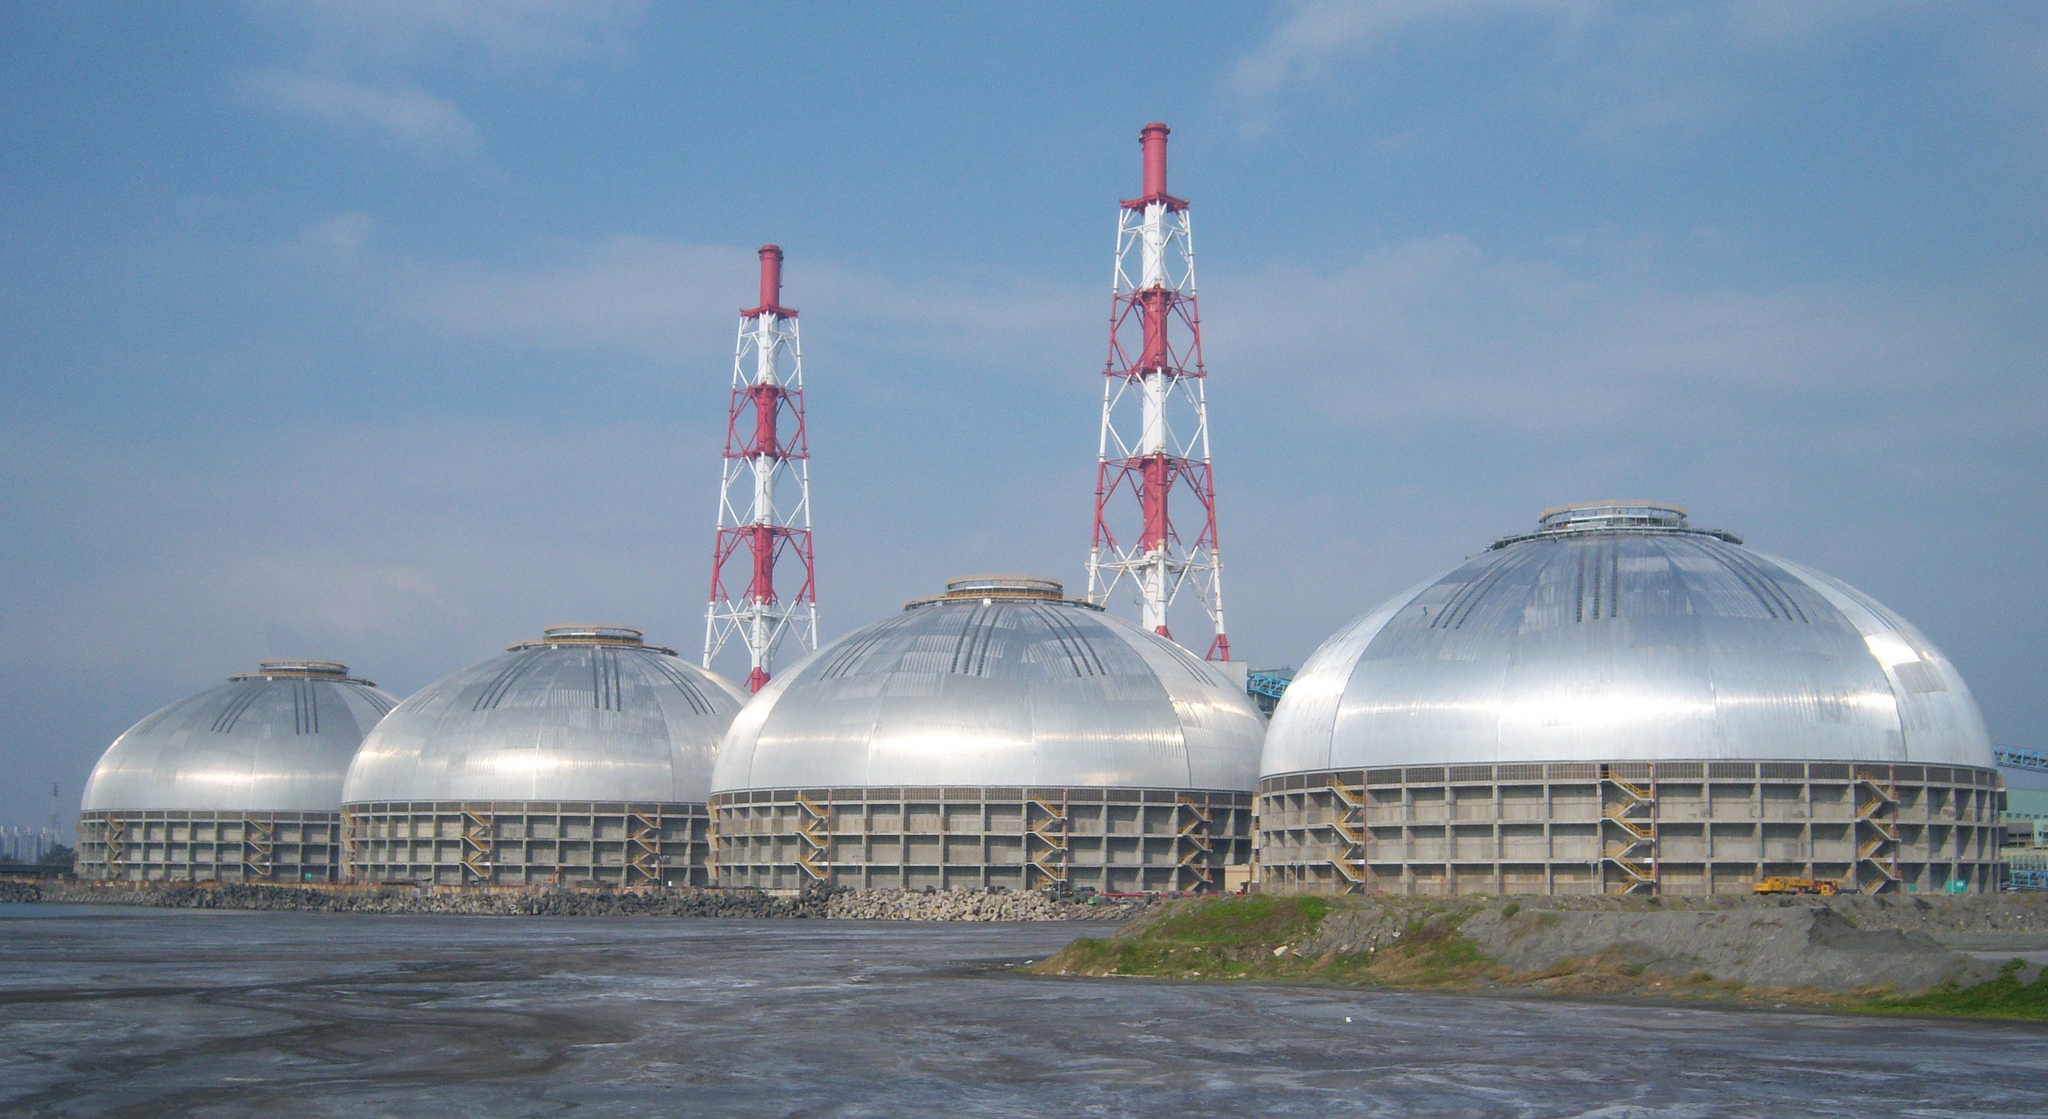 4 x 126m Tai Power coal domes in Kaohsiung, Taiwan.